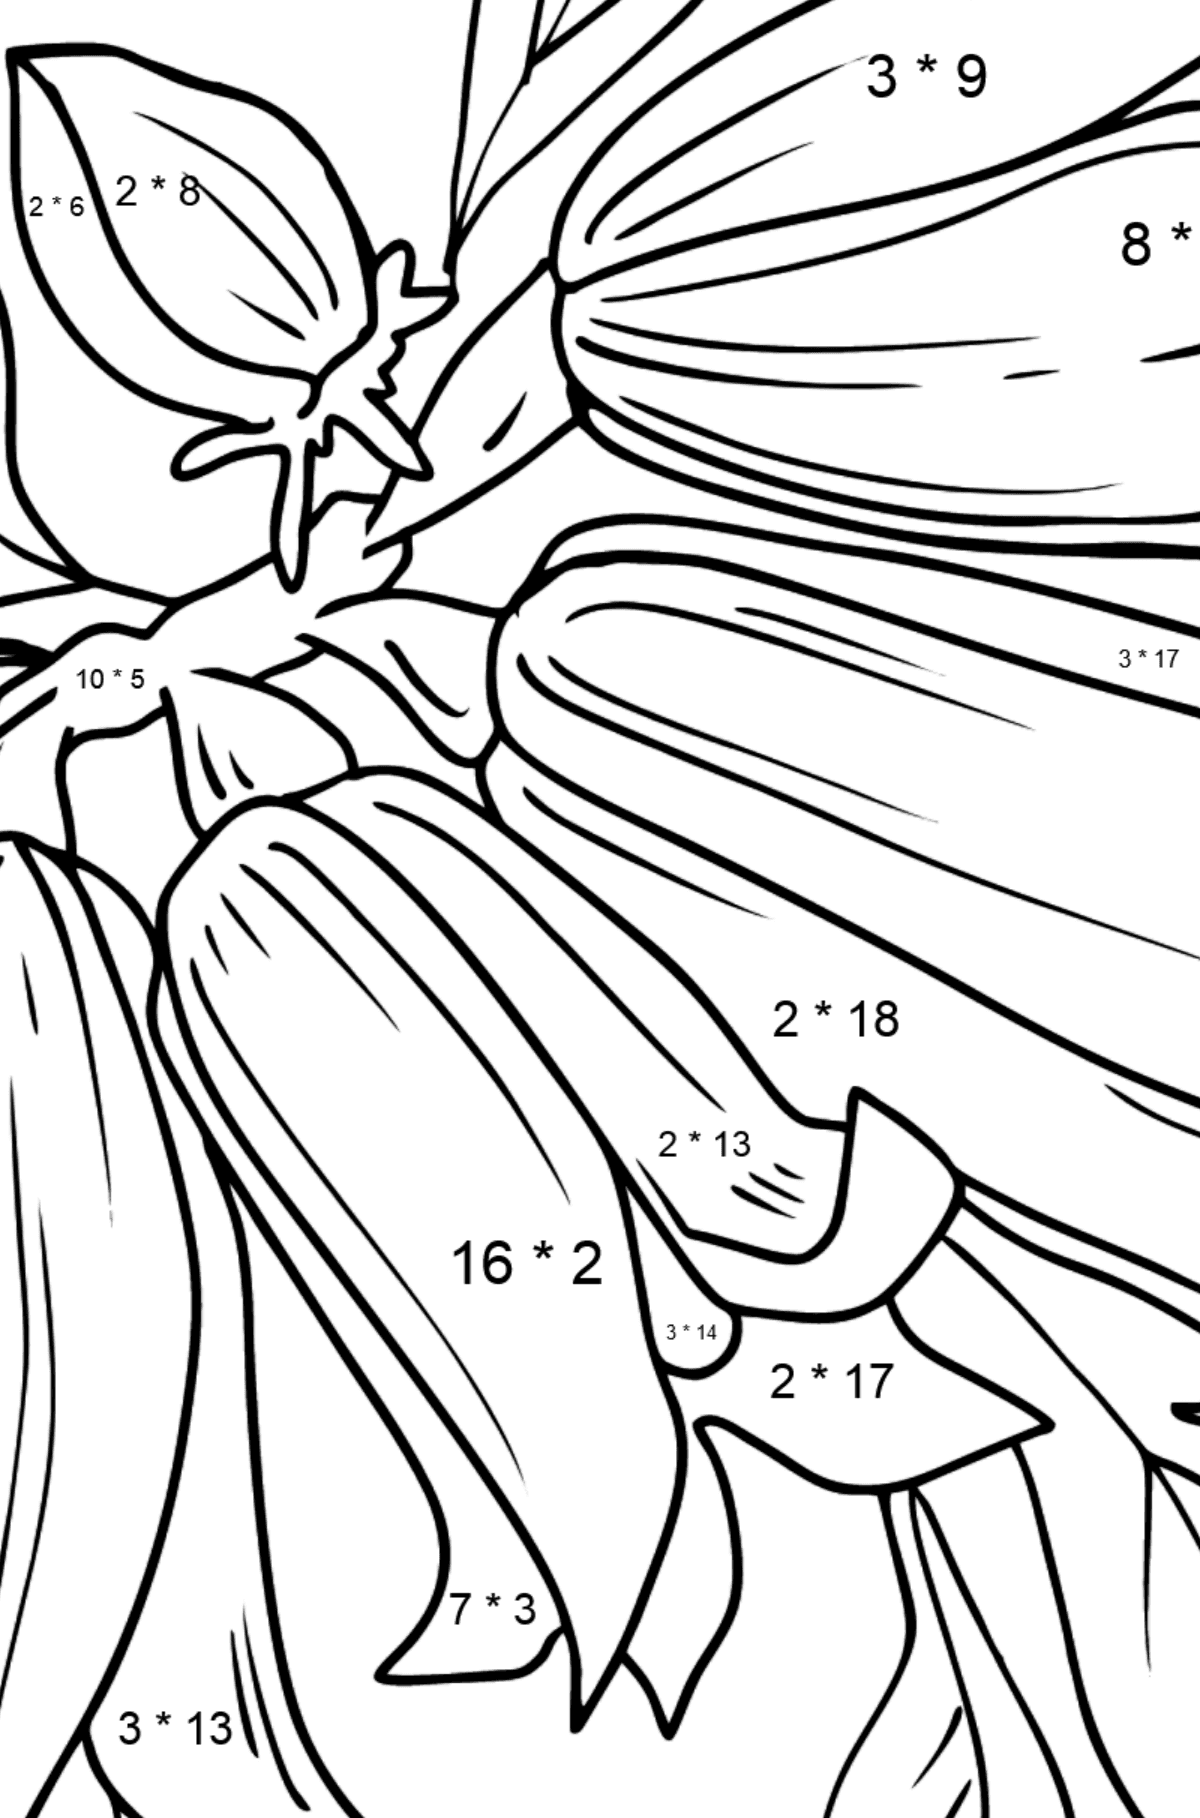 Flower Coloring Page - Bells - Math Coloring - Multiplication for Kids